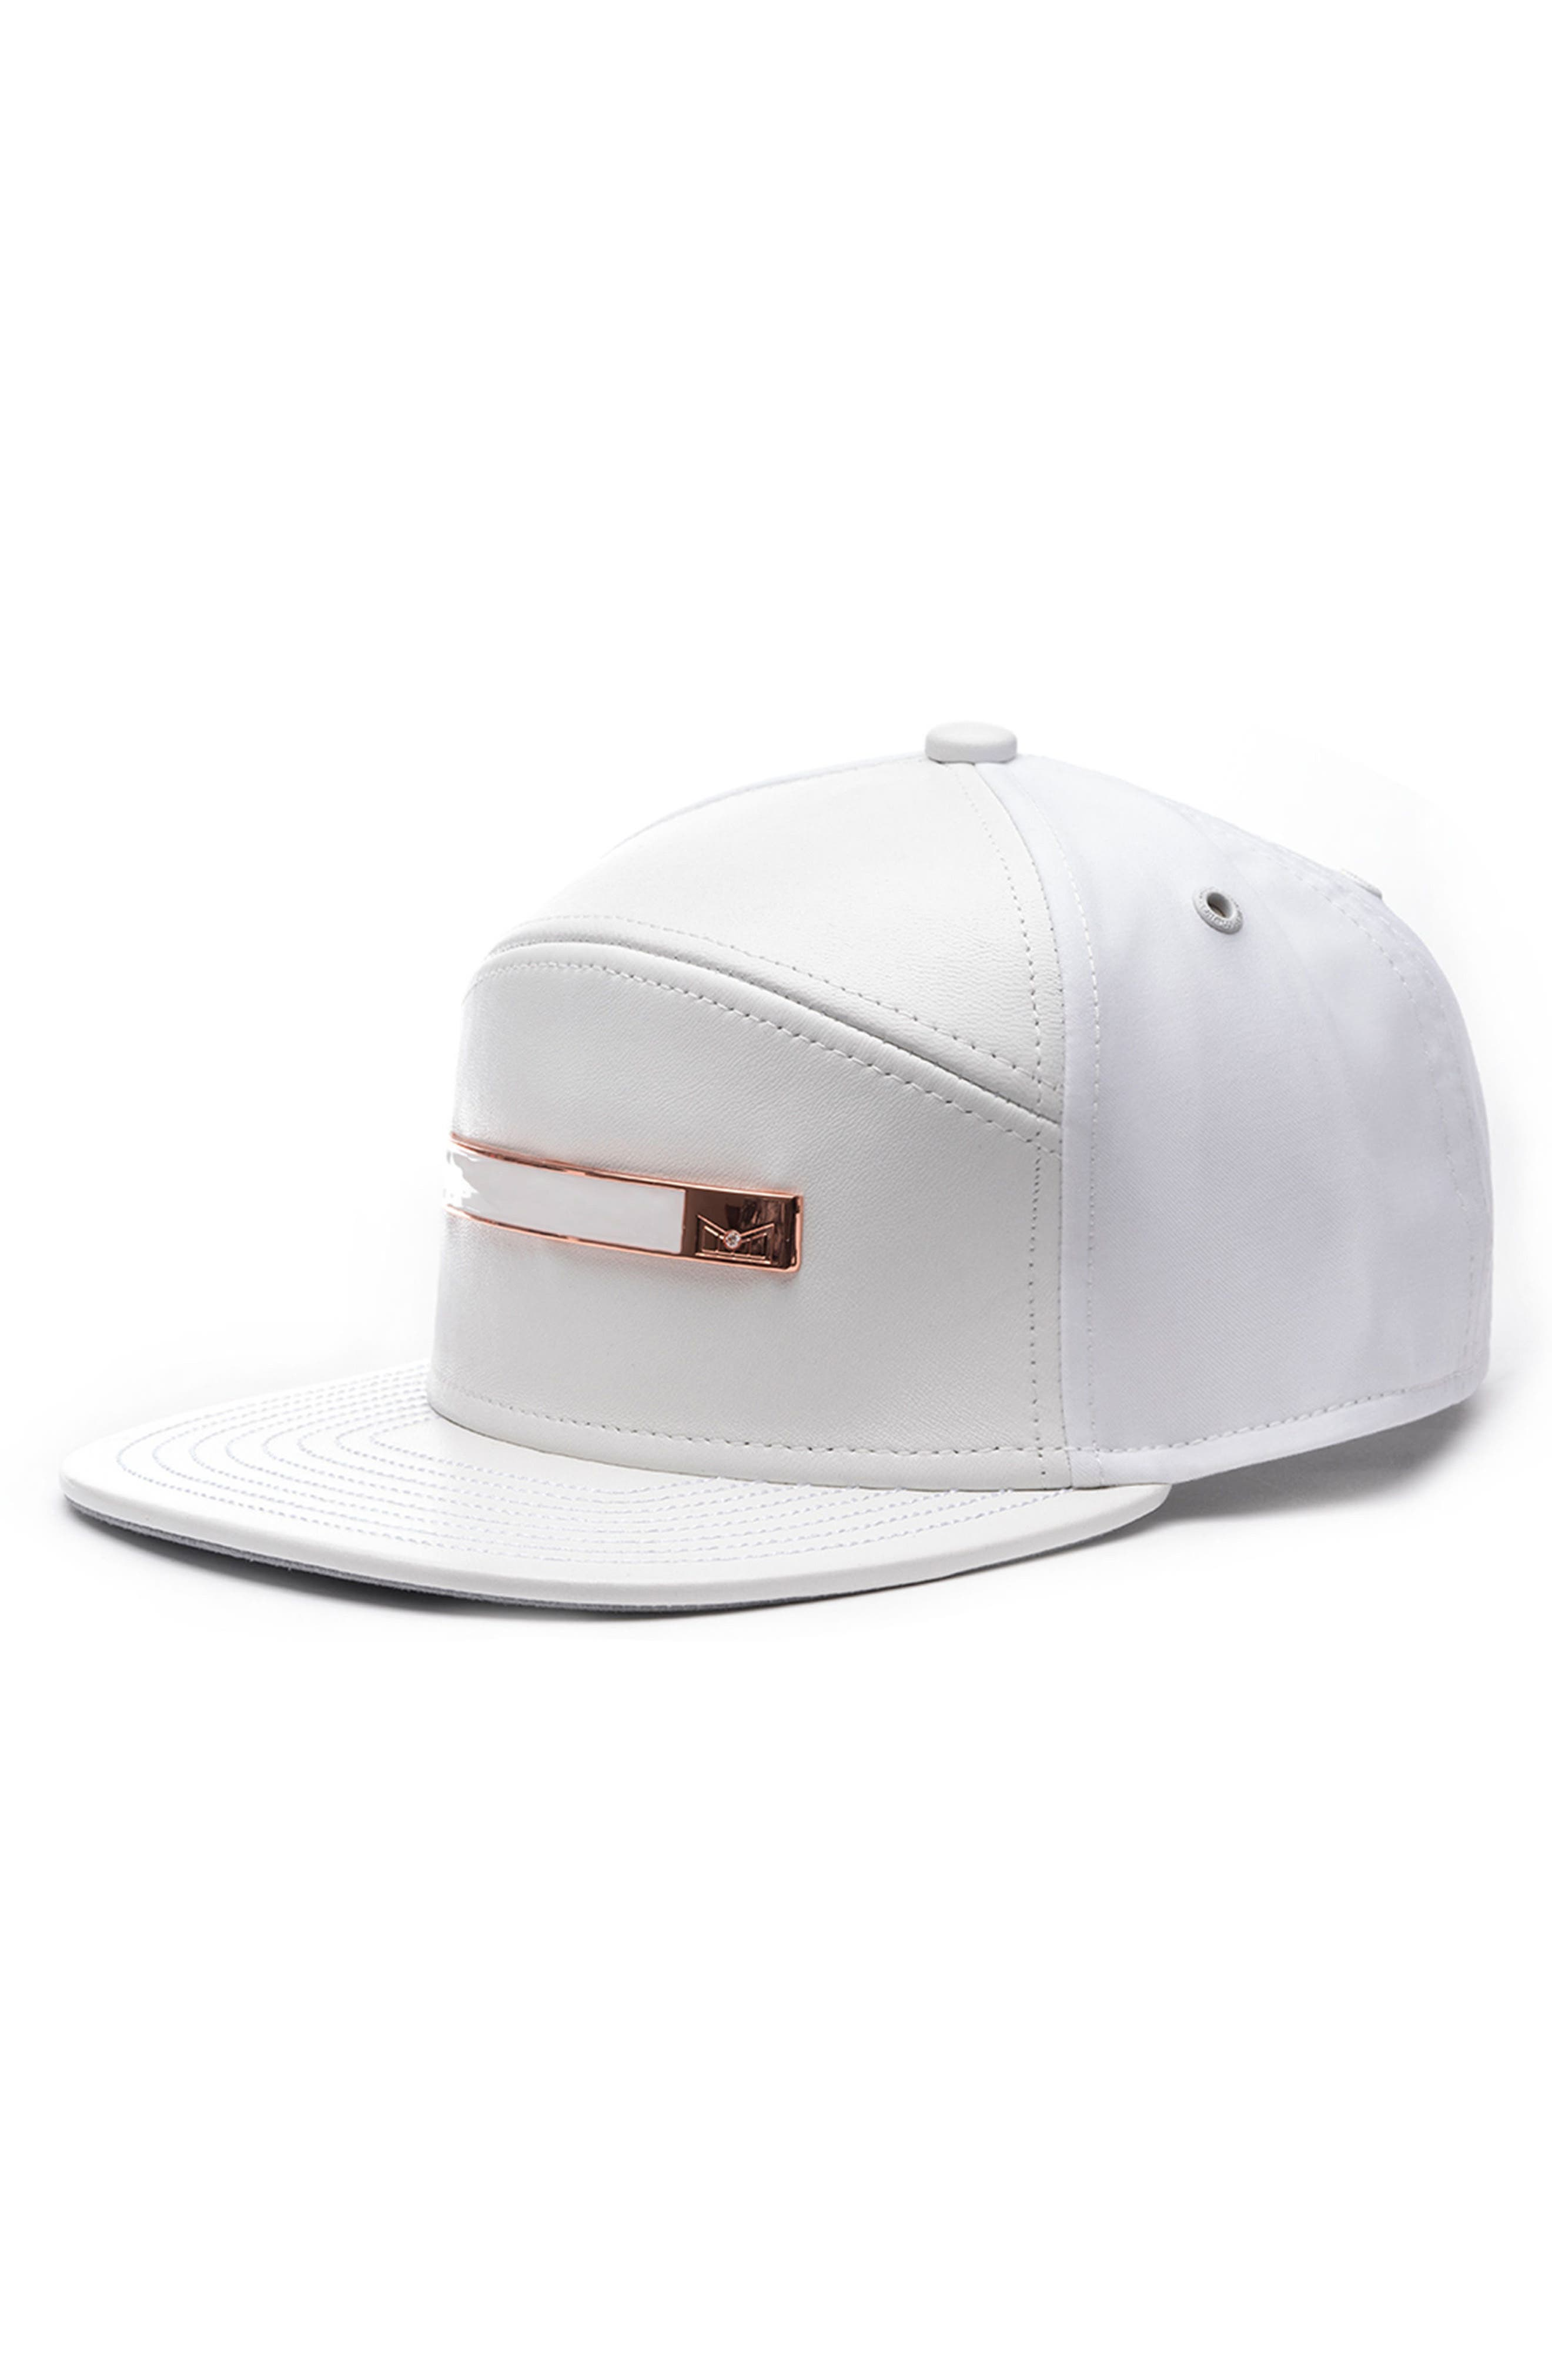 Dynasty V Limited Edition Leather, Cashmere, Wool & Diamond Cap,                             Main thumbnail 1, color,                             White